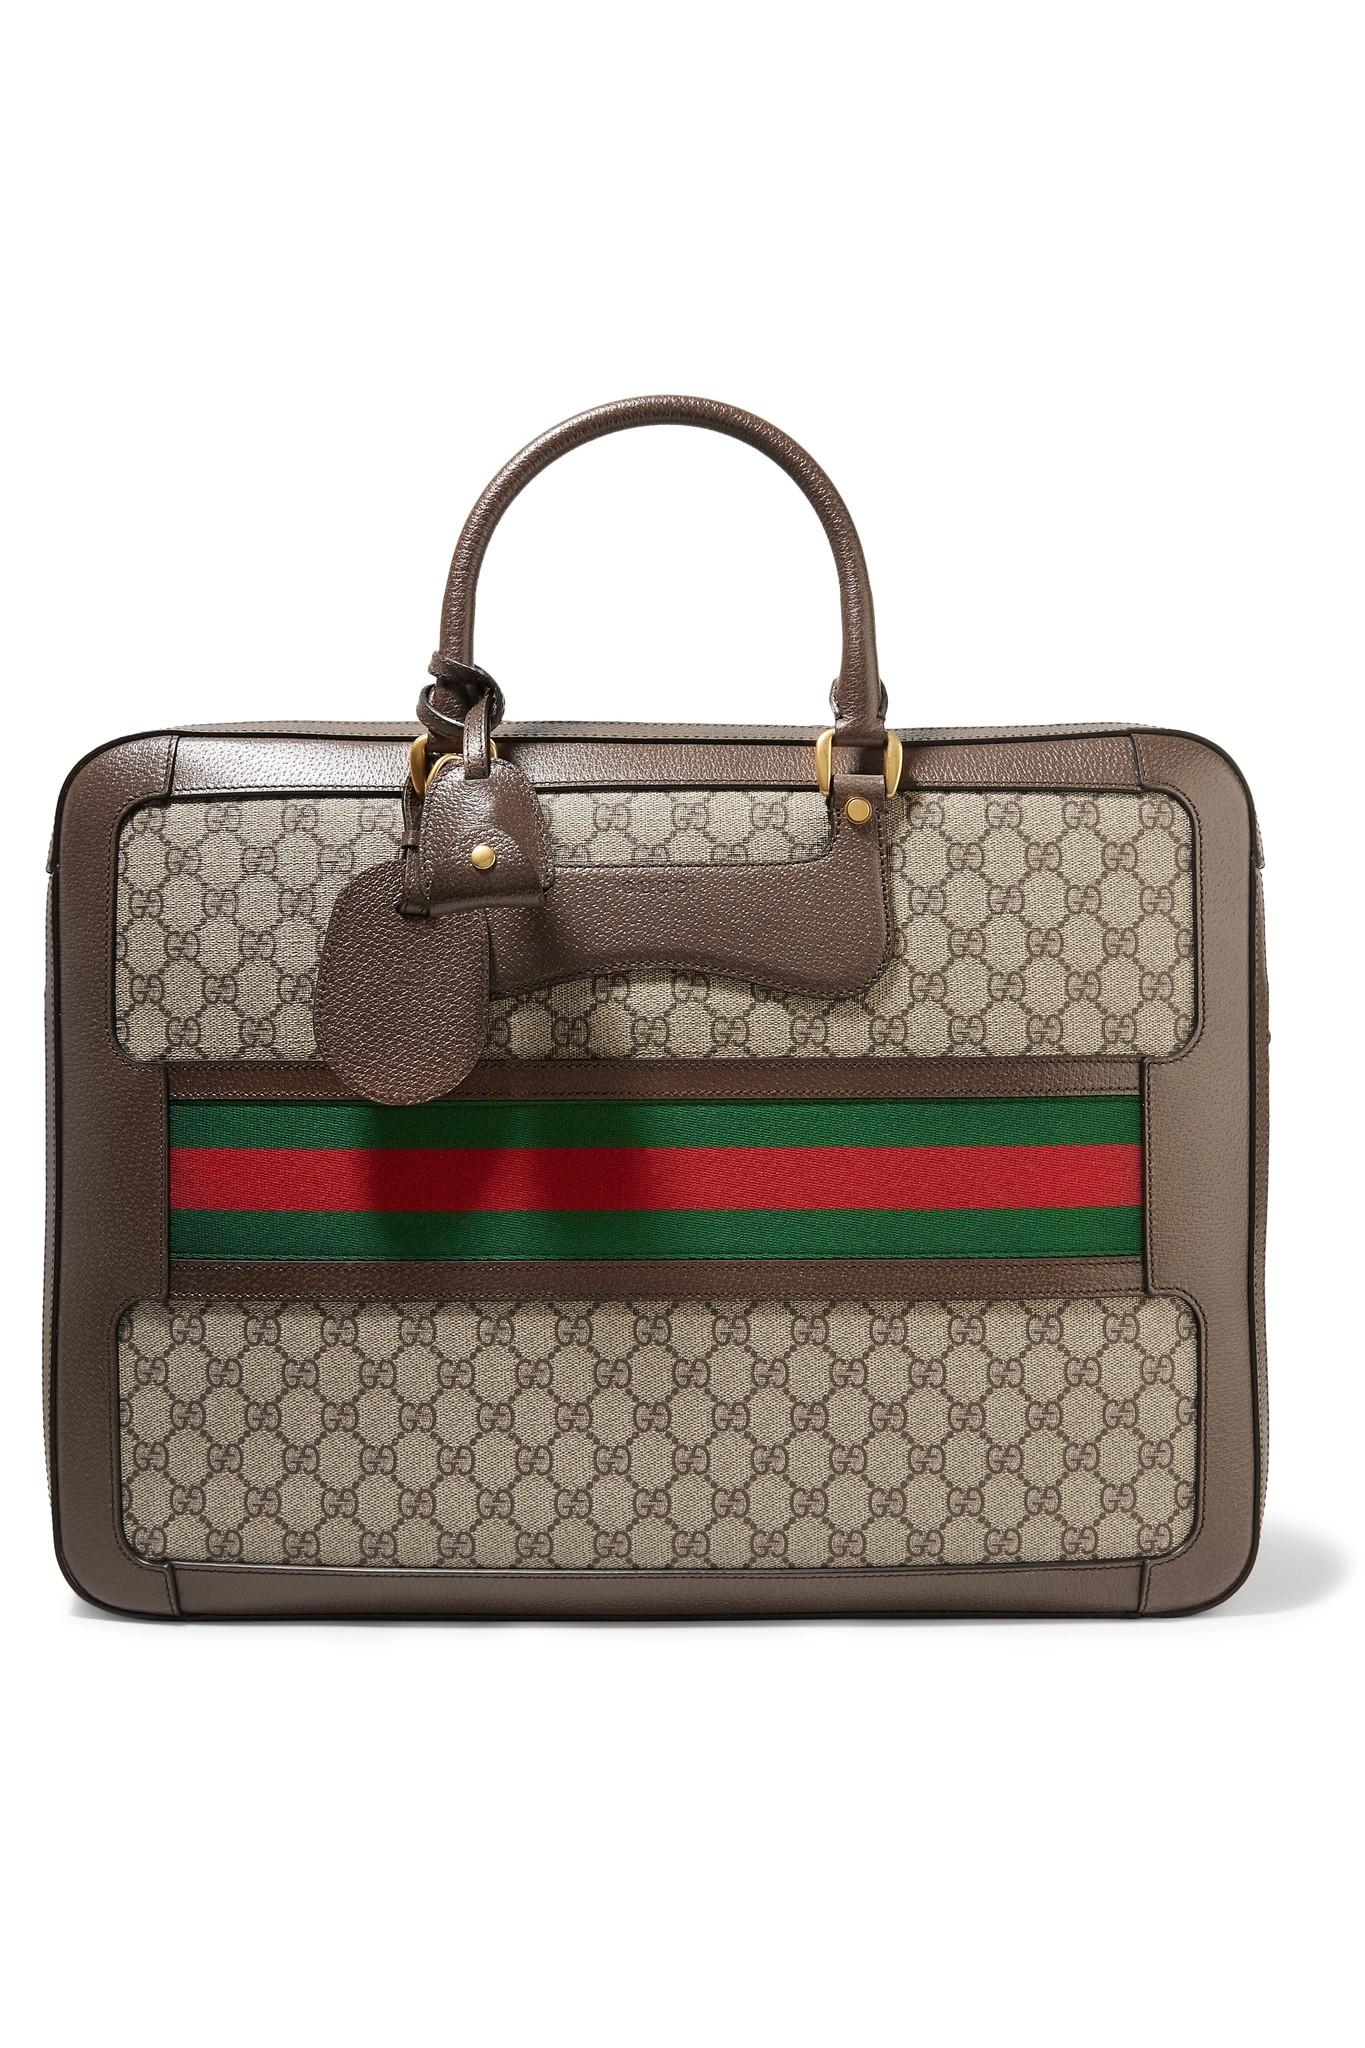 Echo Small Leather-trimmed Coated-canvas Suitcase - Brown Gucci